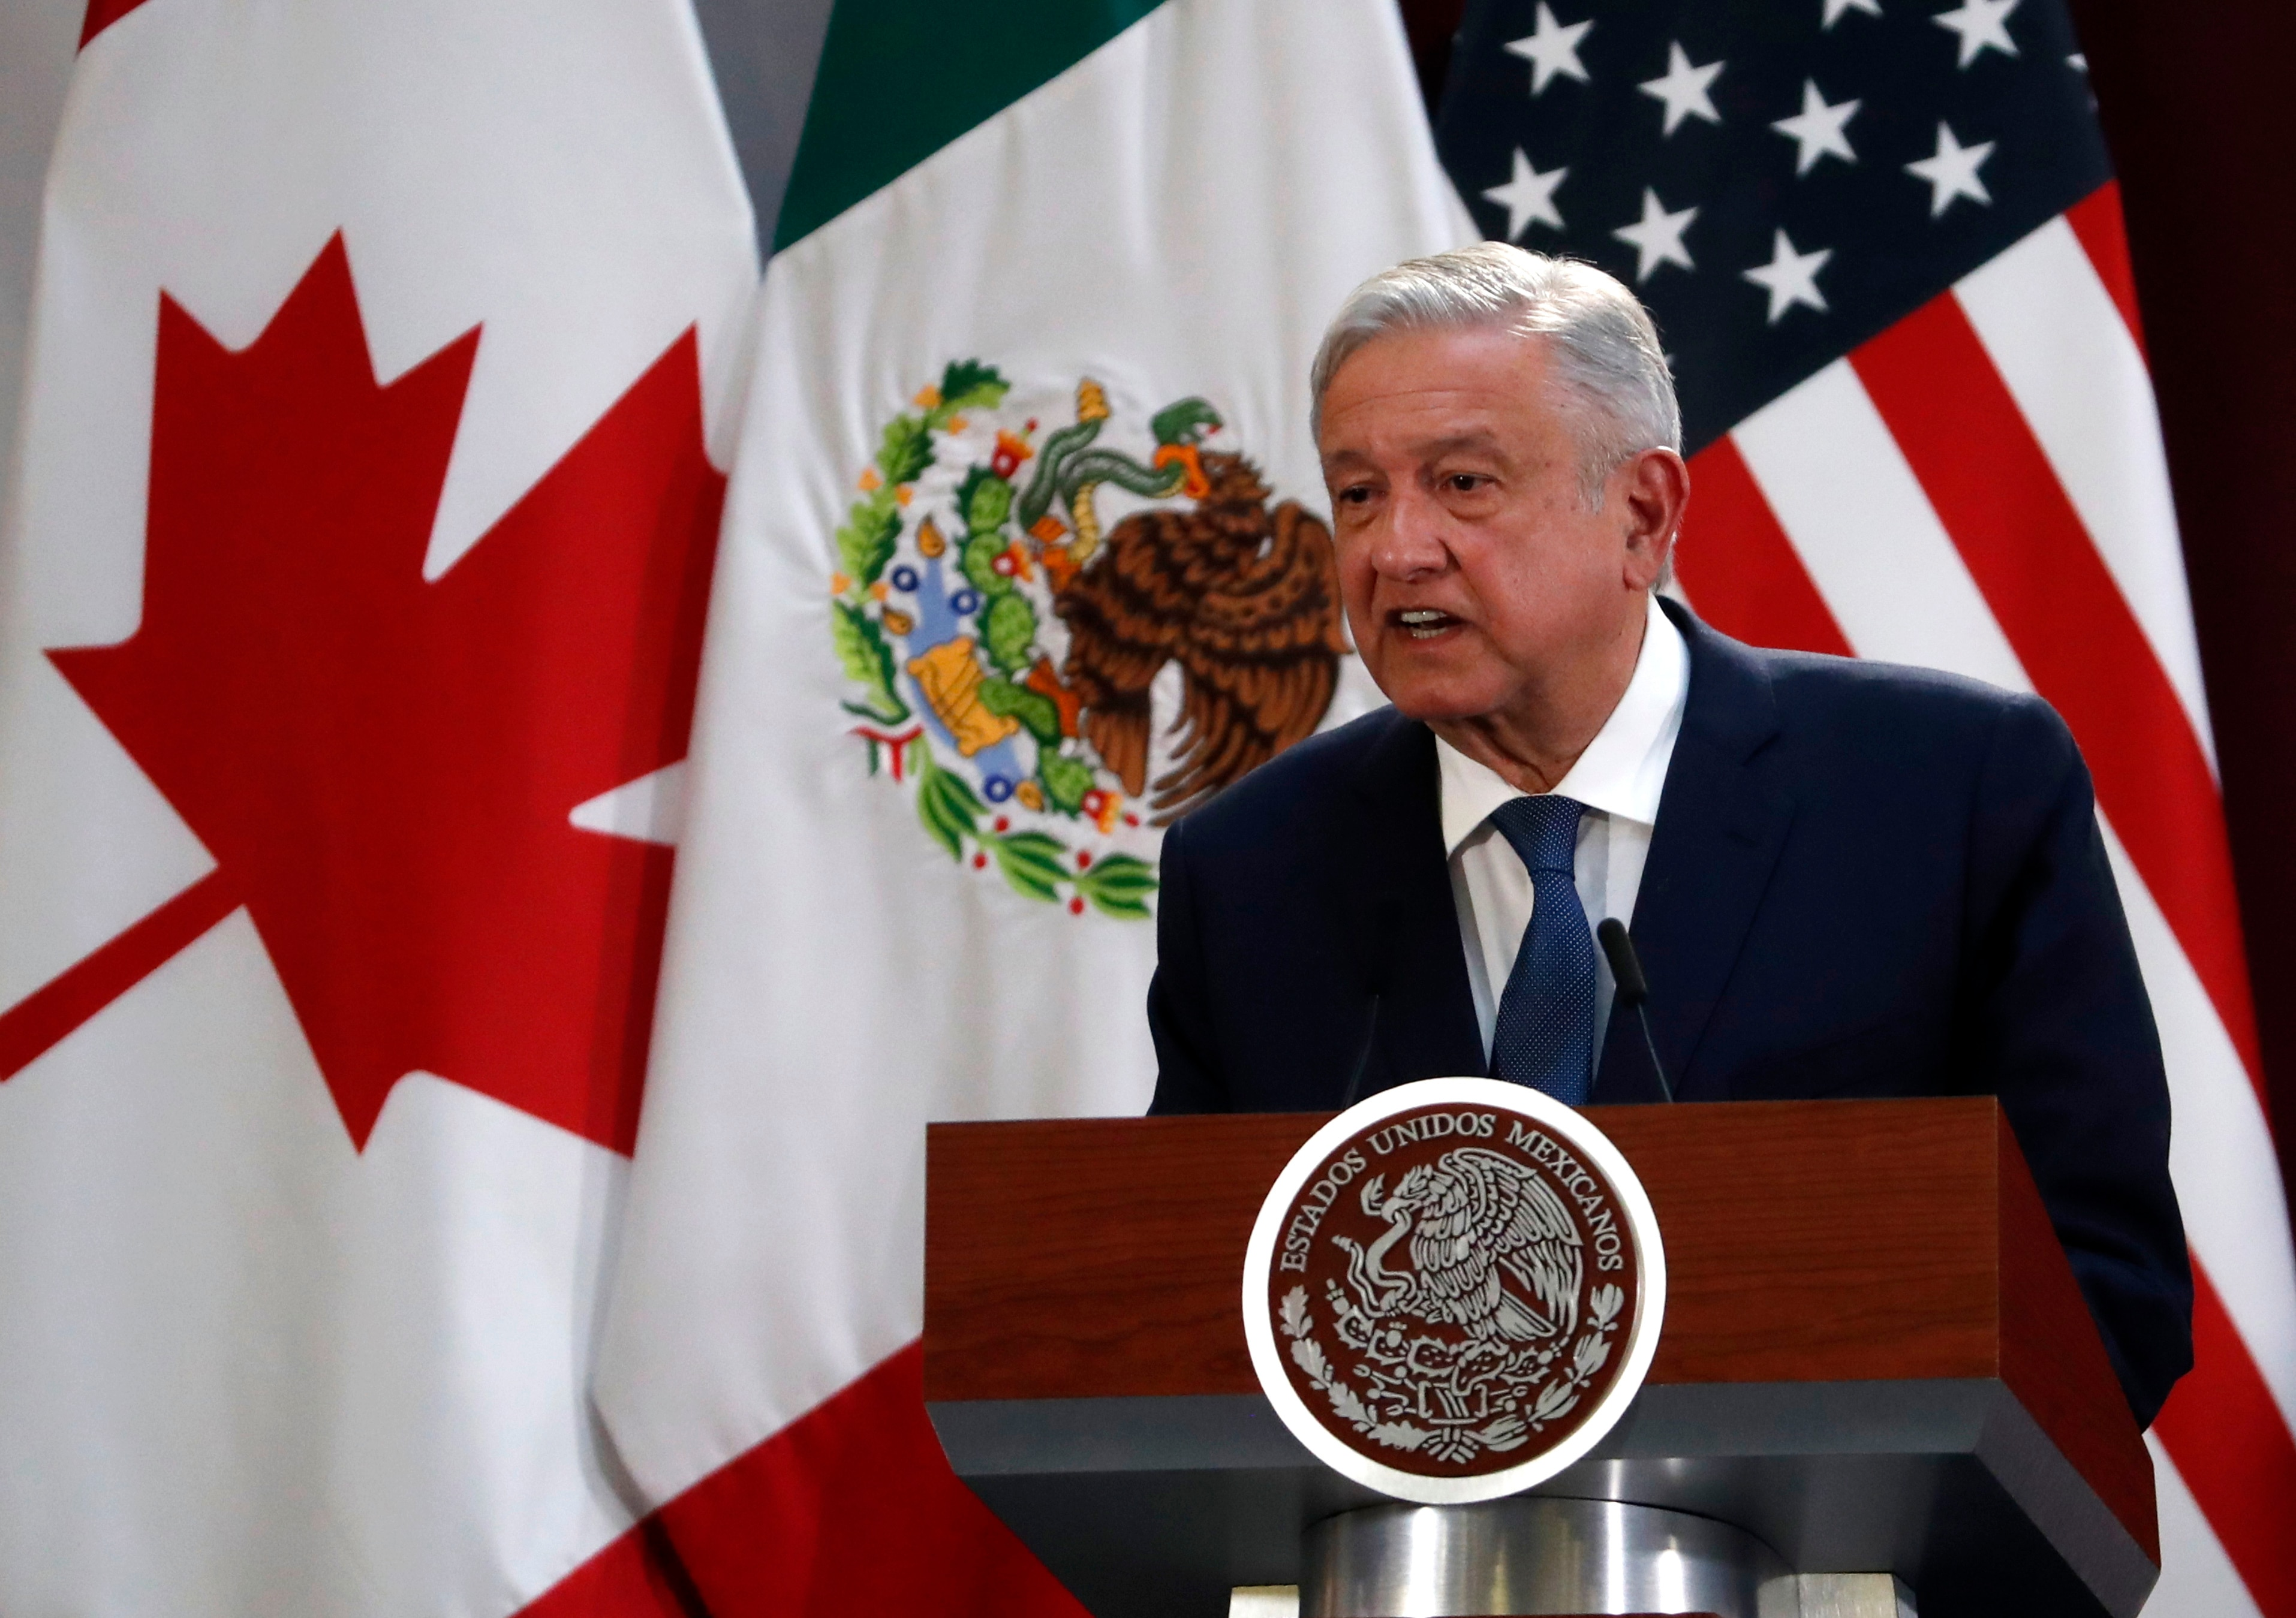 Mexican President to Meet Trump on First Official Visit to Washington